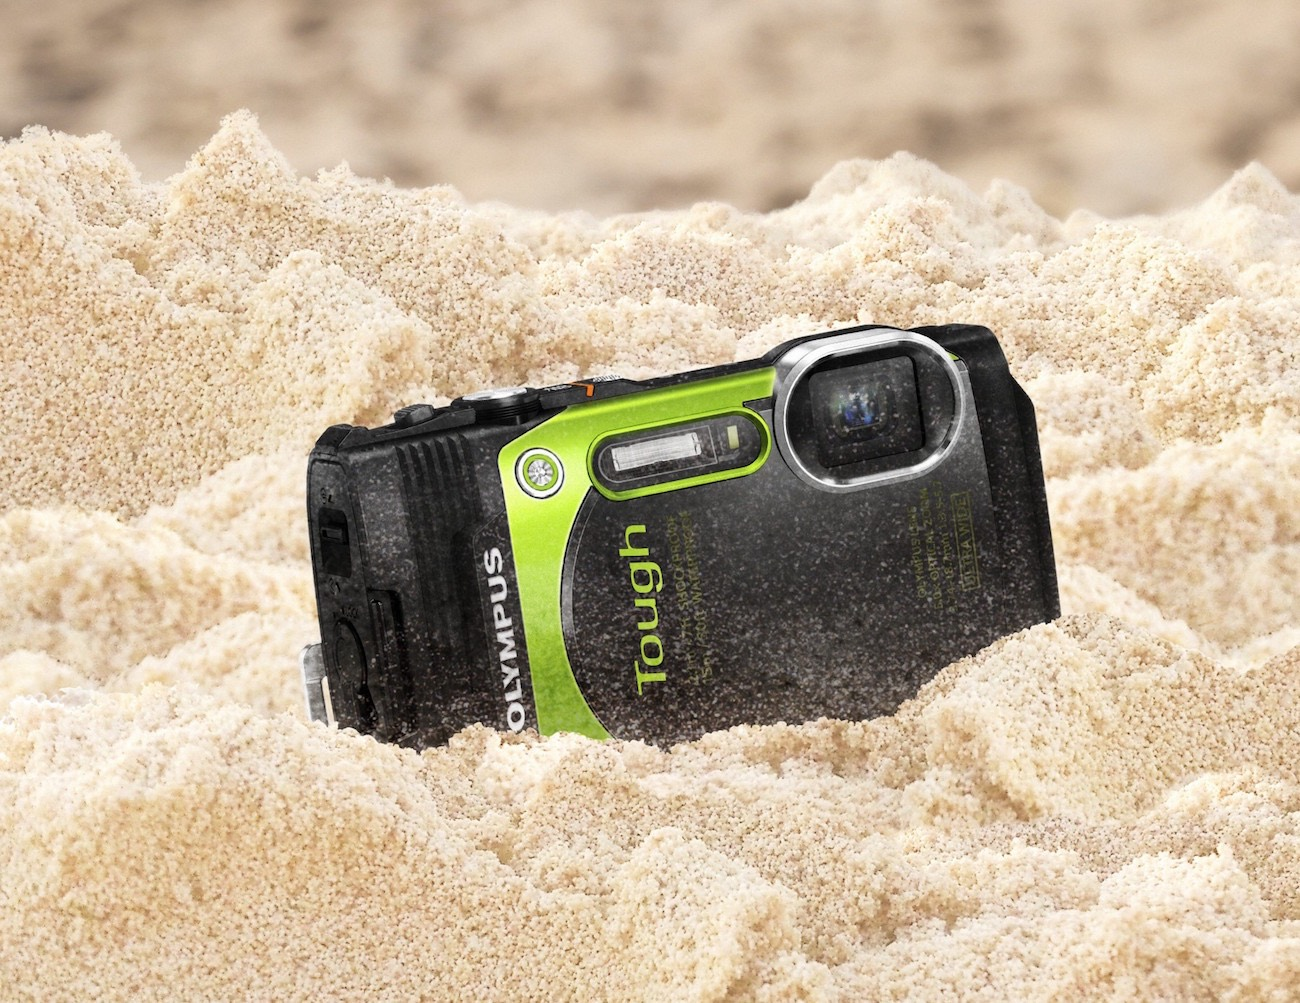 Olympus TG-870 Tough Waterproof Digital Camera